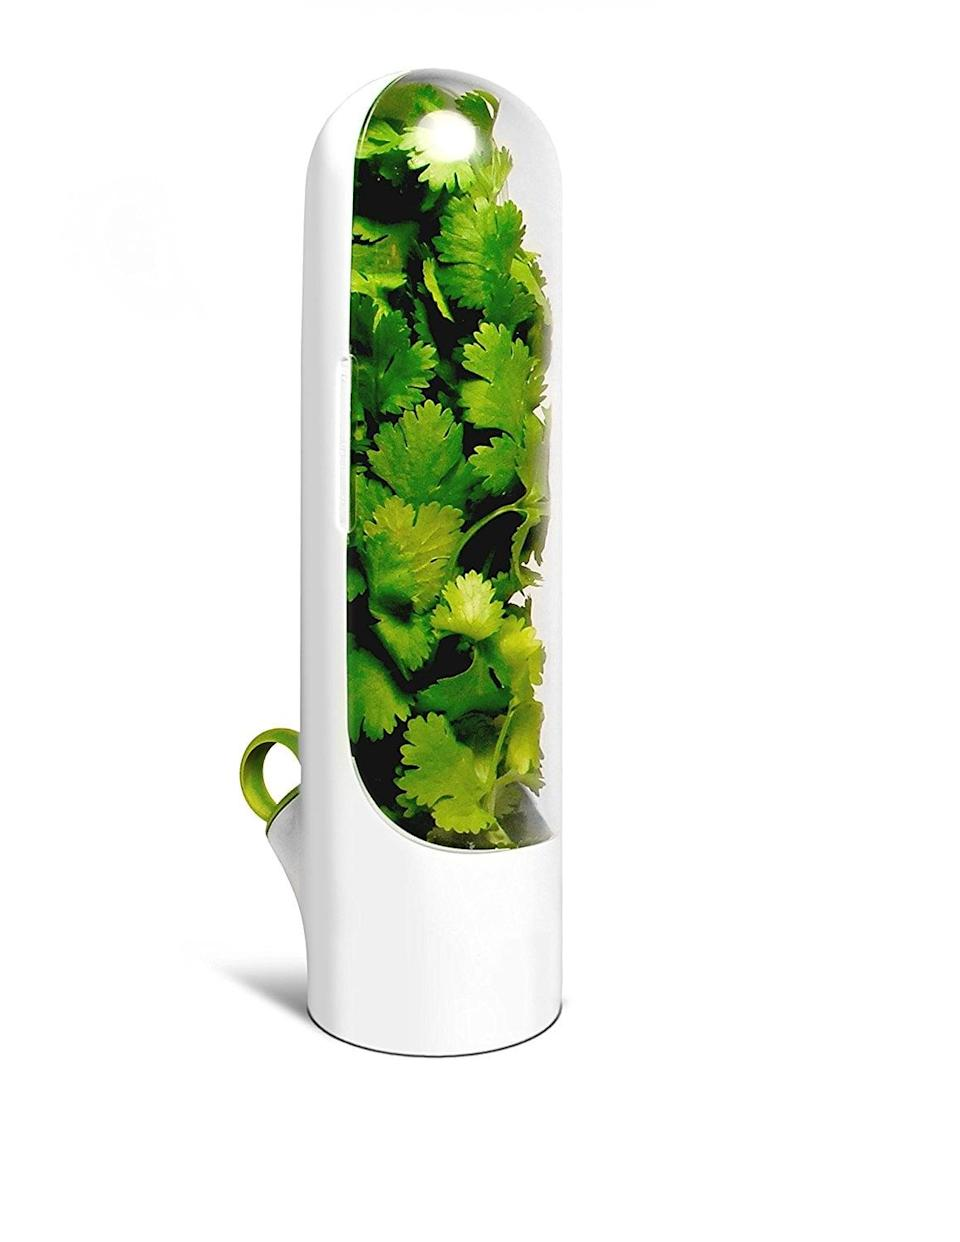 <p>Make sure your herbs stay as fresh as possible by storing them in this <span>Herb Saver Best Keeper</span> ($20). Simply refill it with water every three to five days, and herbs will last longer than over.</p>